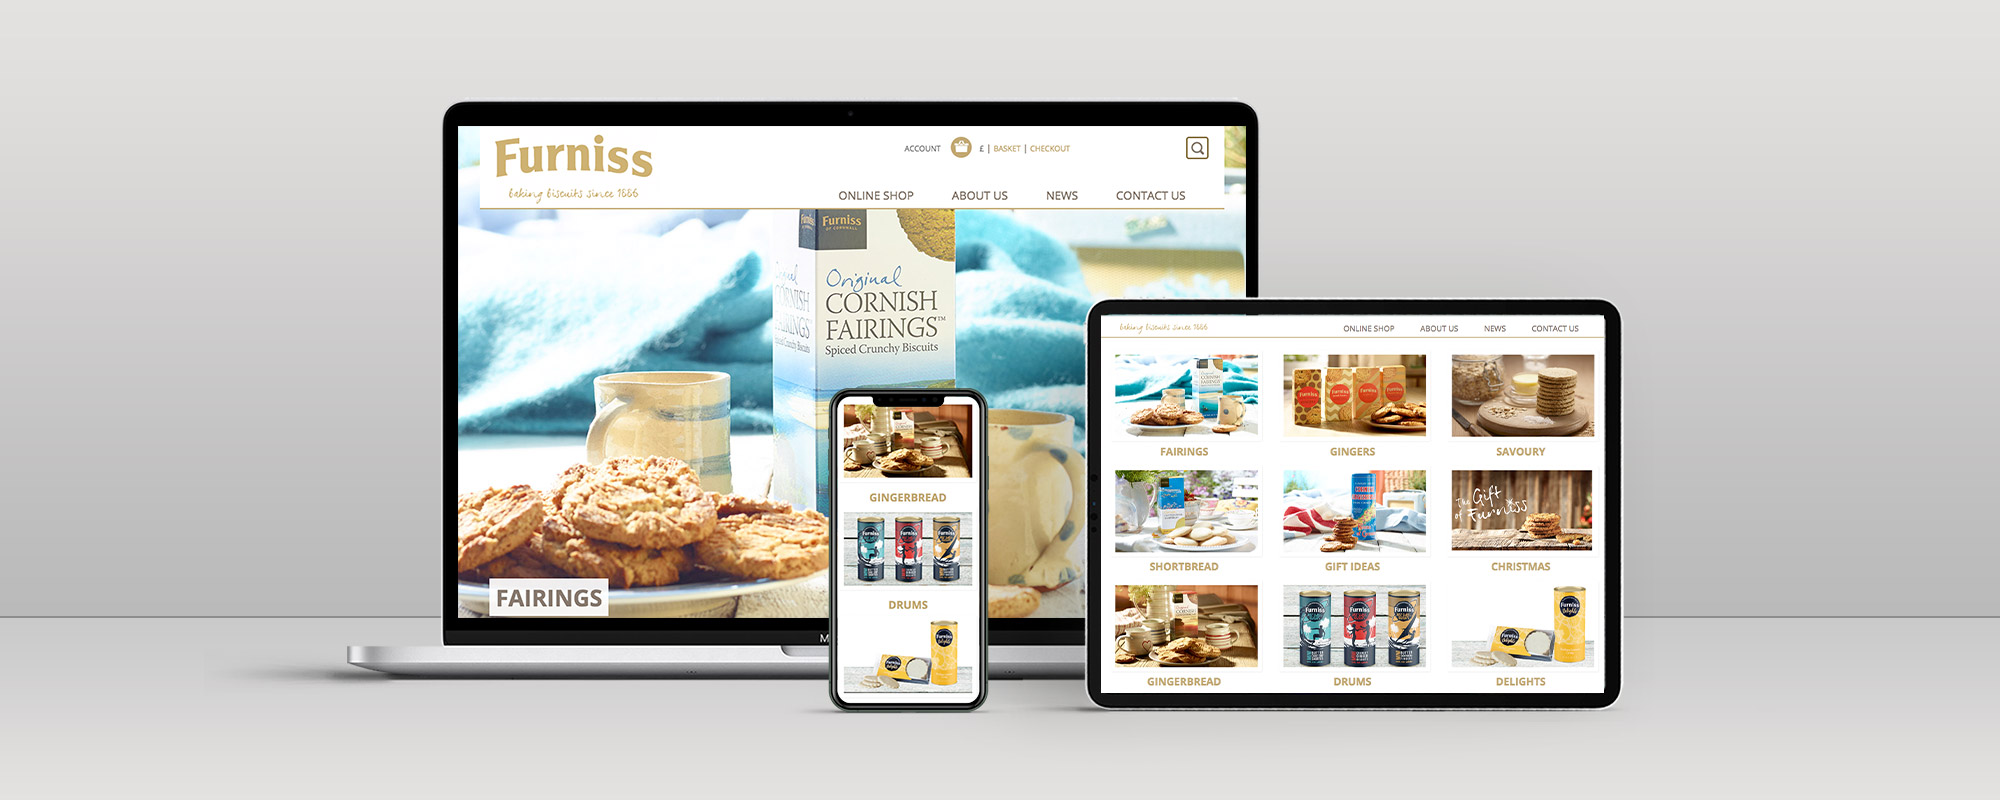 Furniss Foods Magento Ecommerce Website Design on 3 Devices